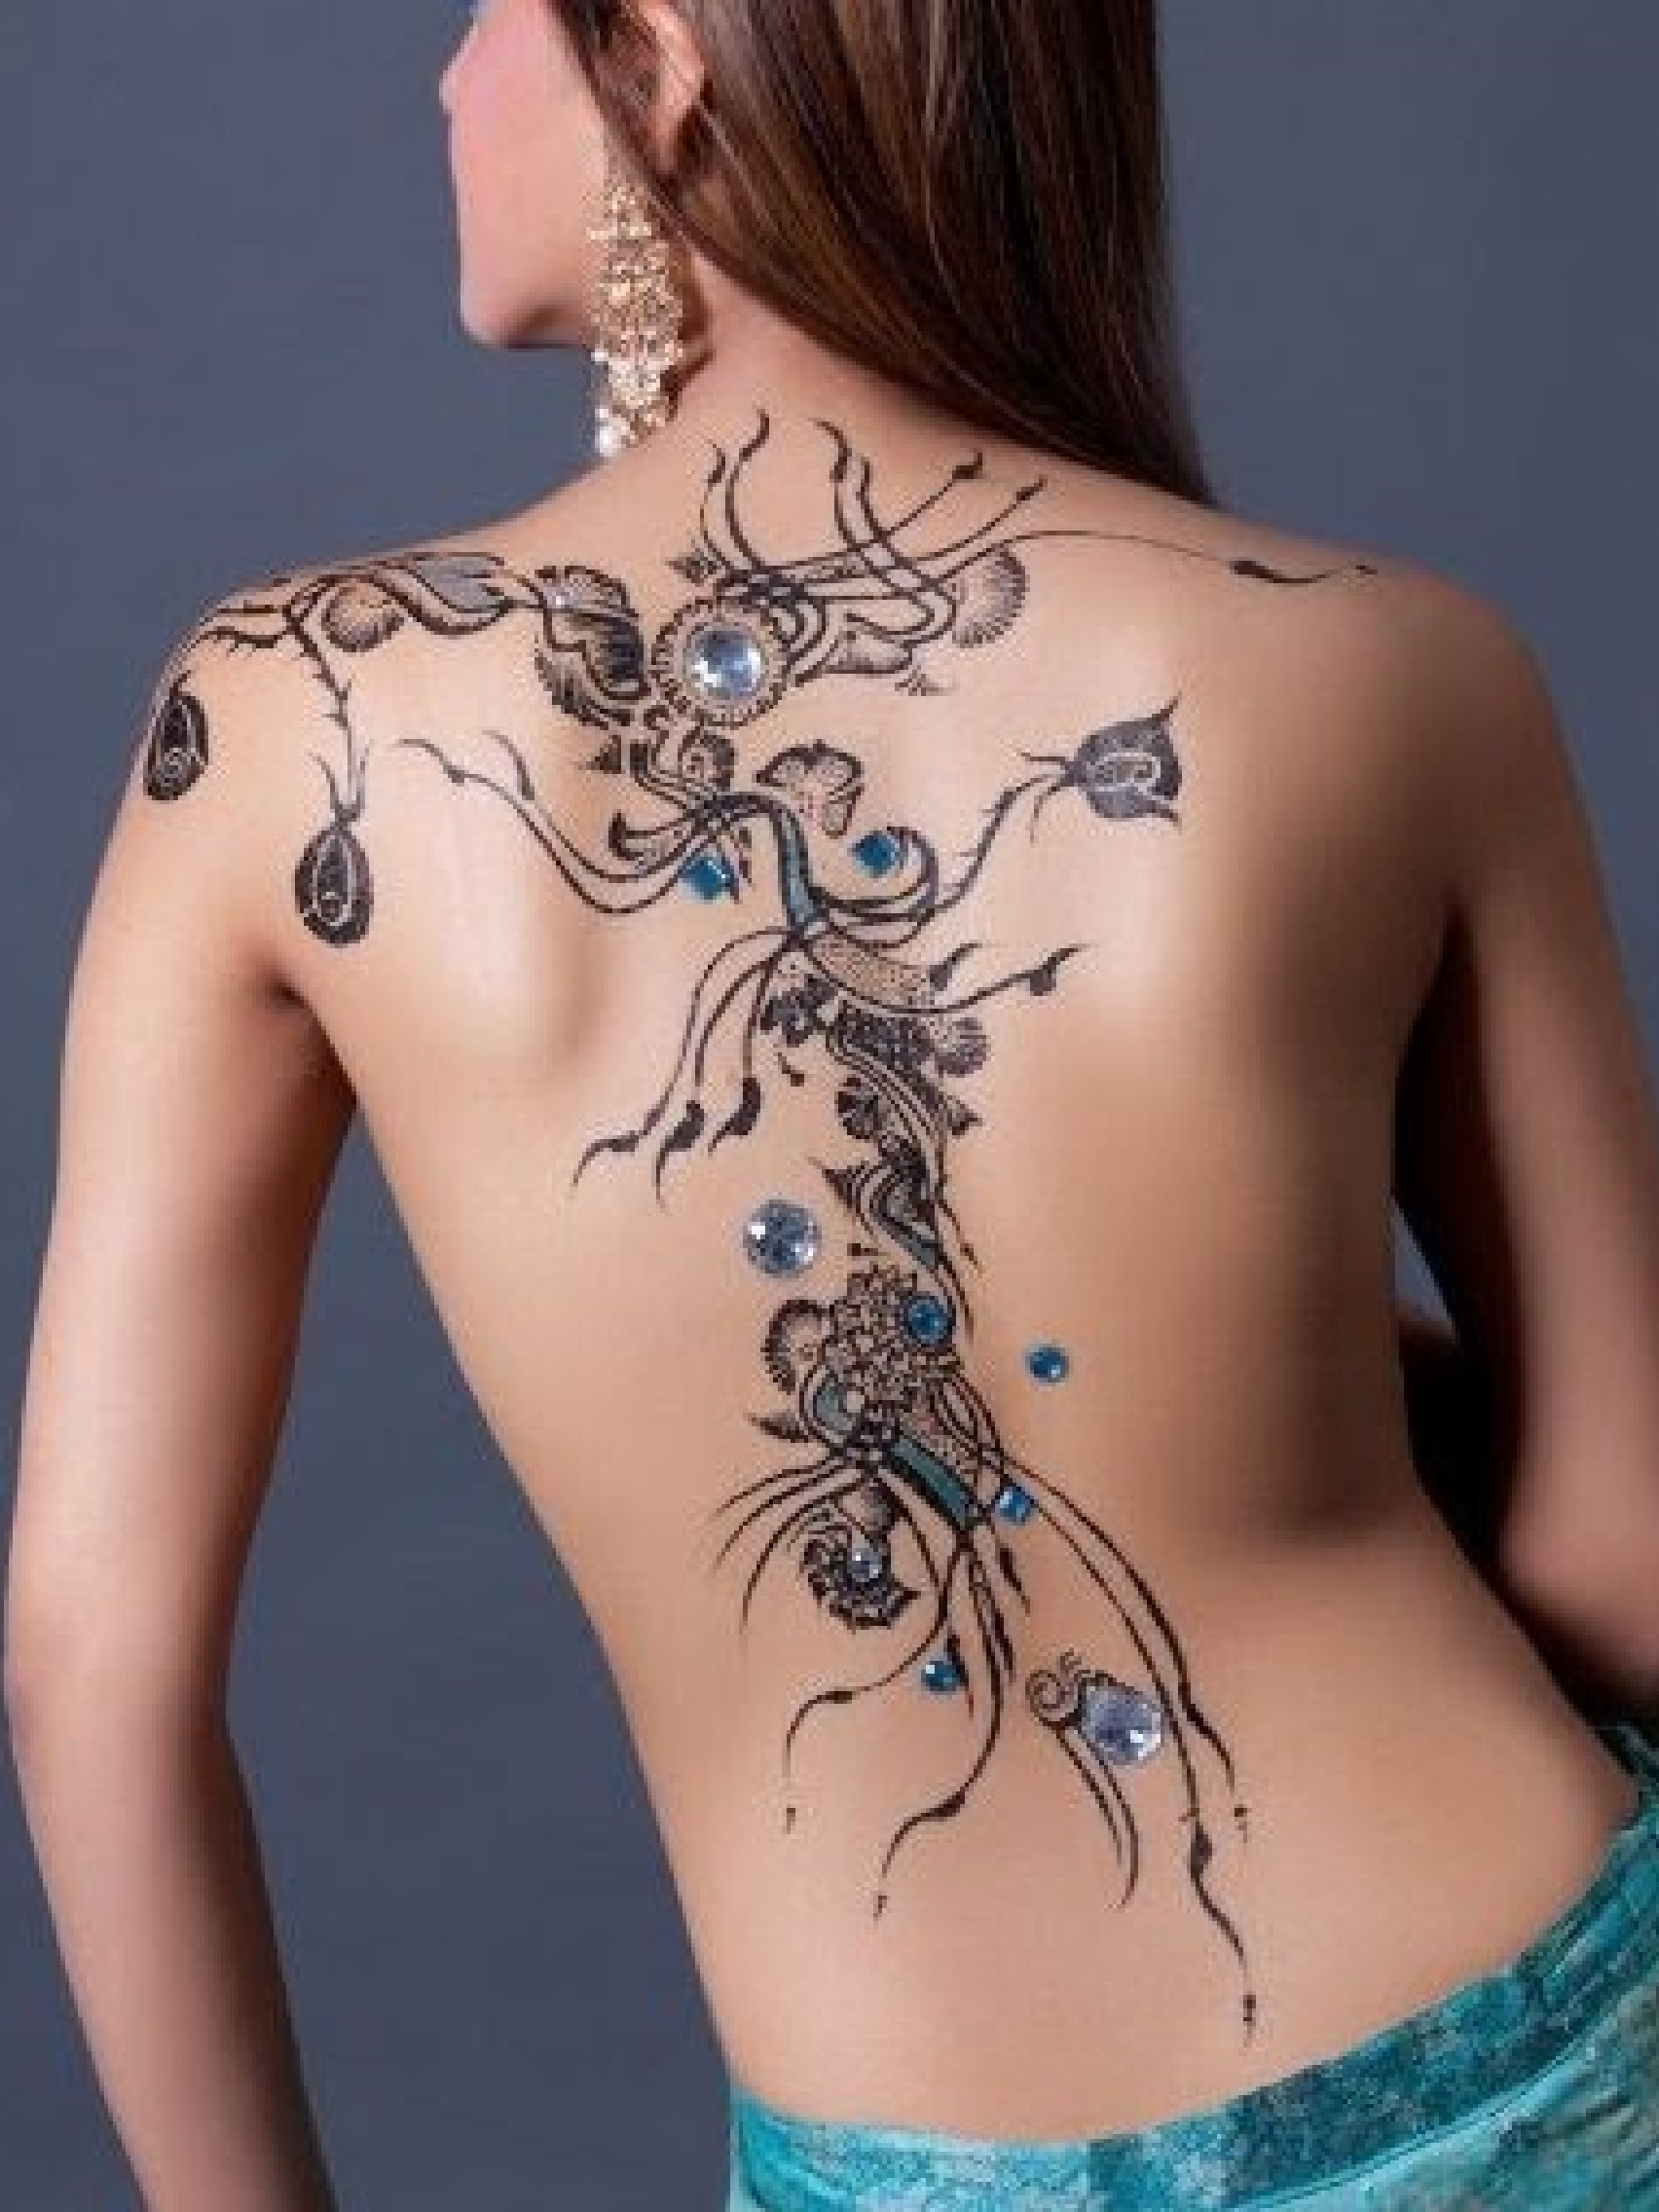 Elegant Henna Tattoo Design On Sexy Back Of Girl